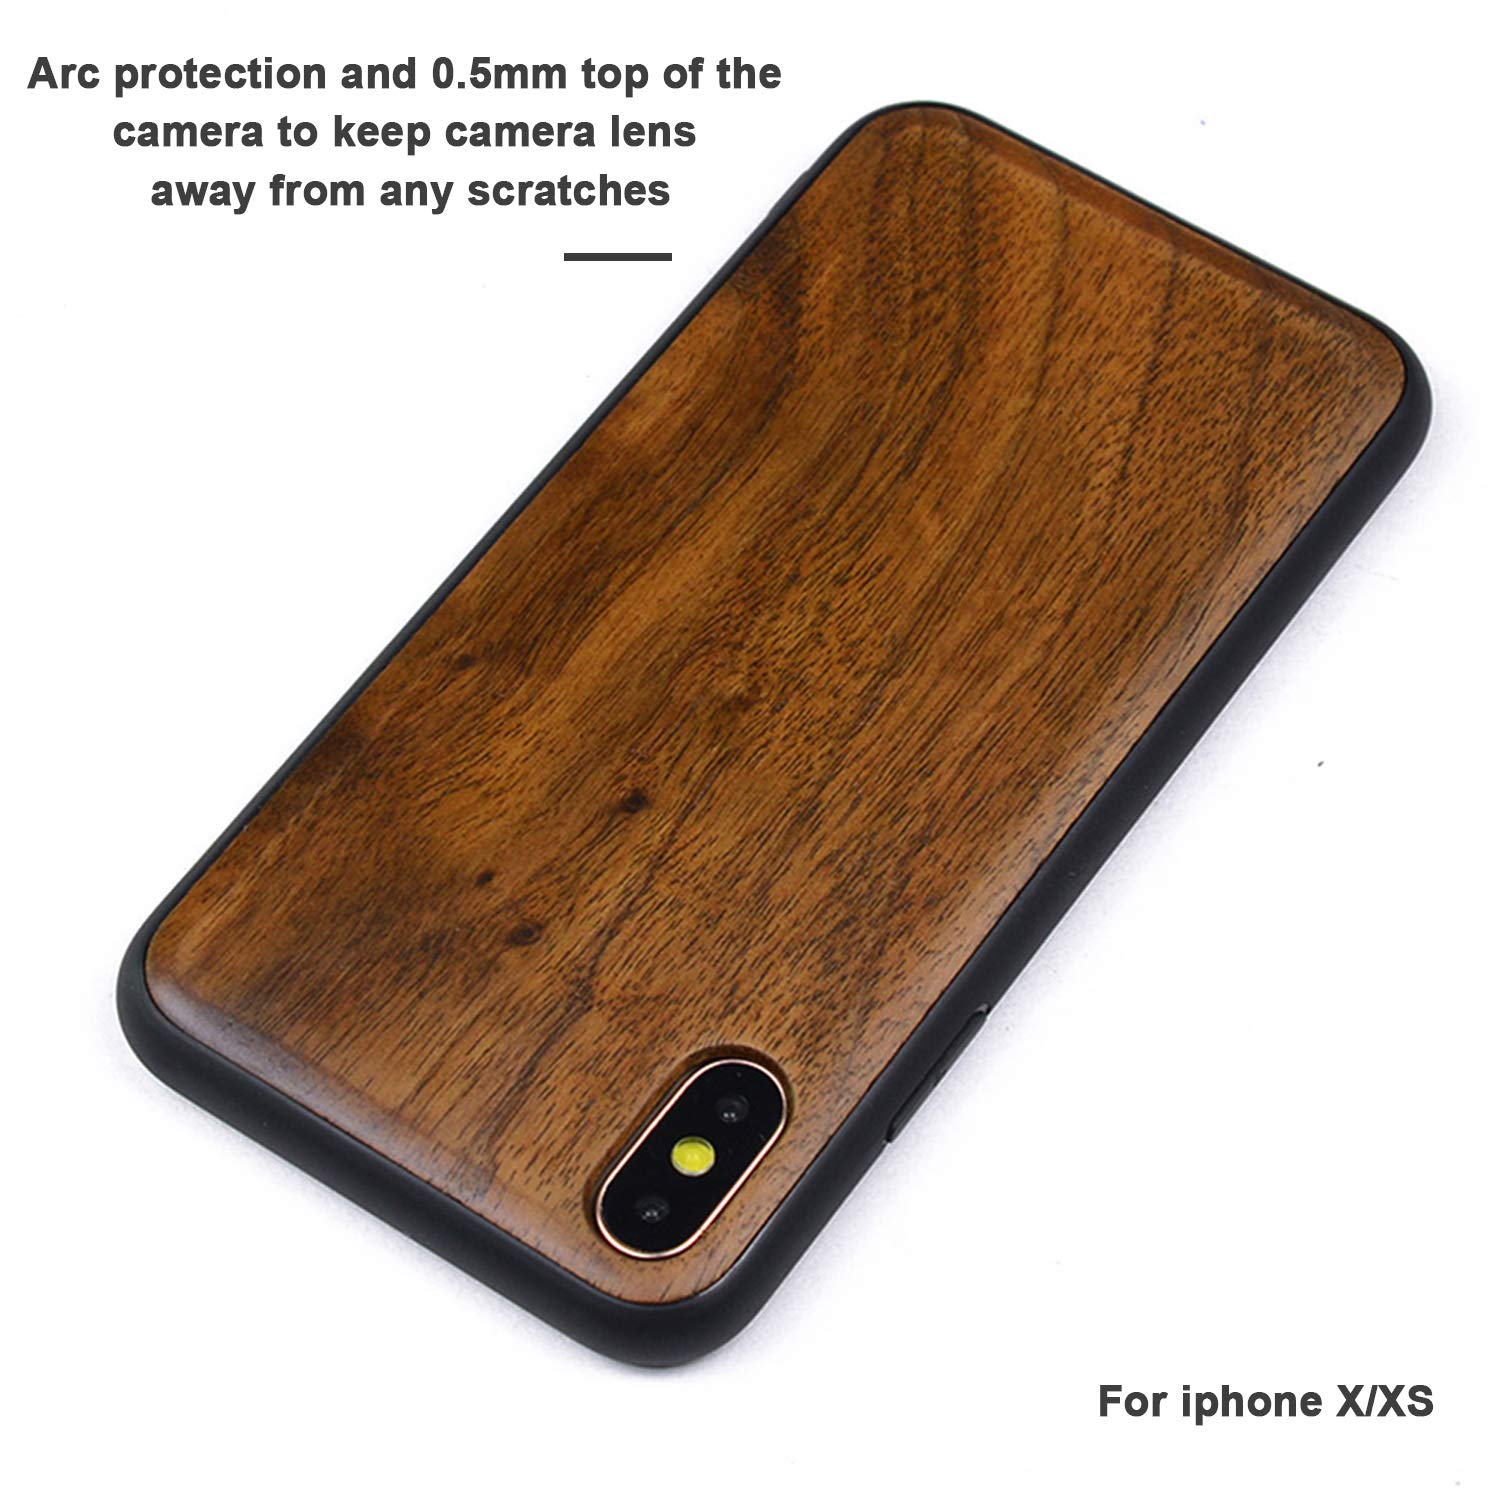 Amazon.com: Boogice iPhone 8 funda de madera – Premium ...